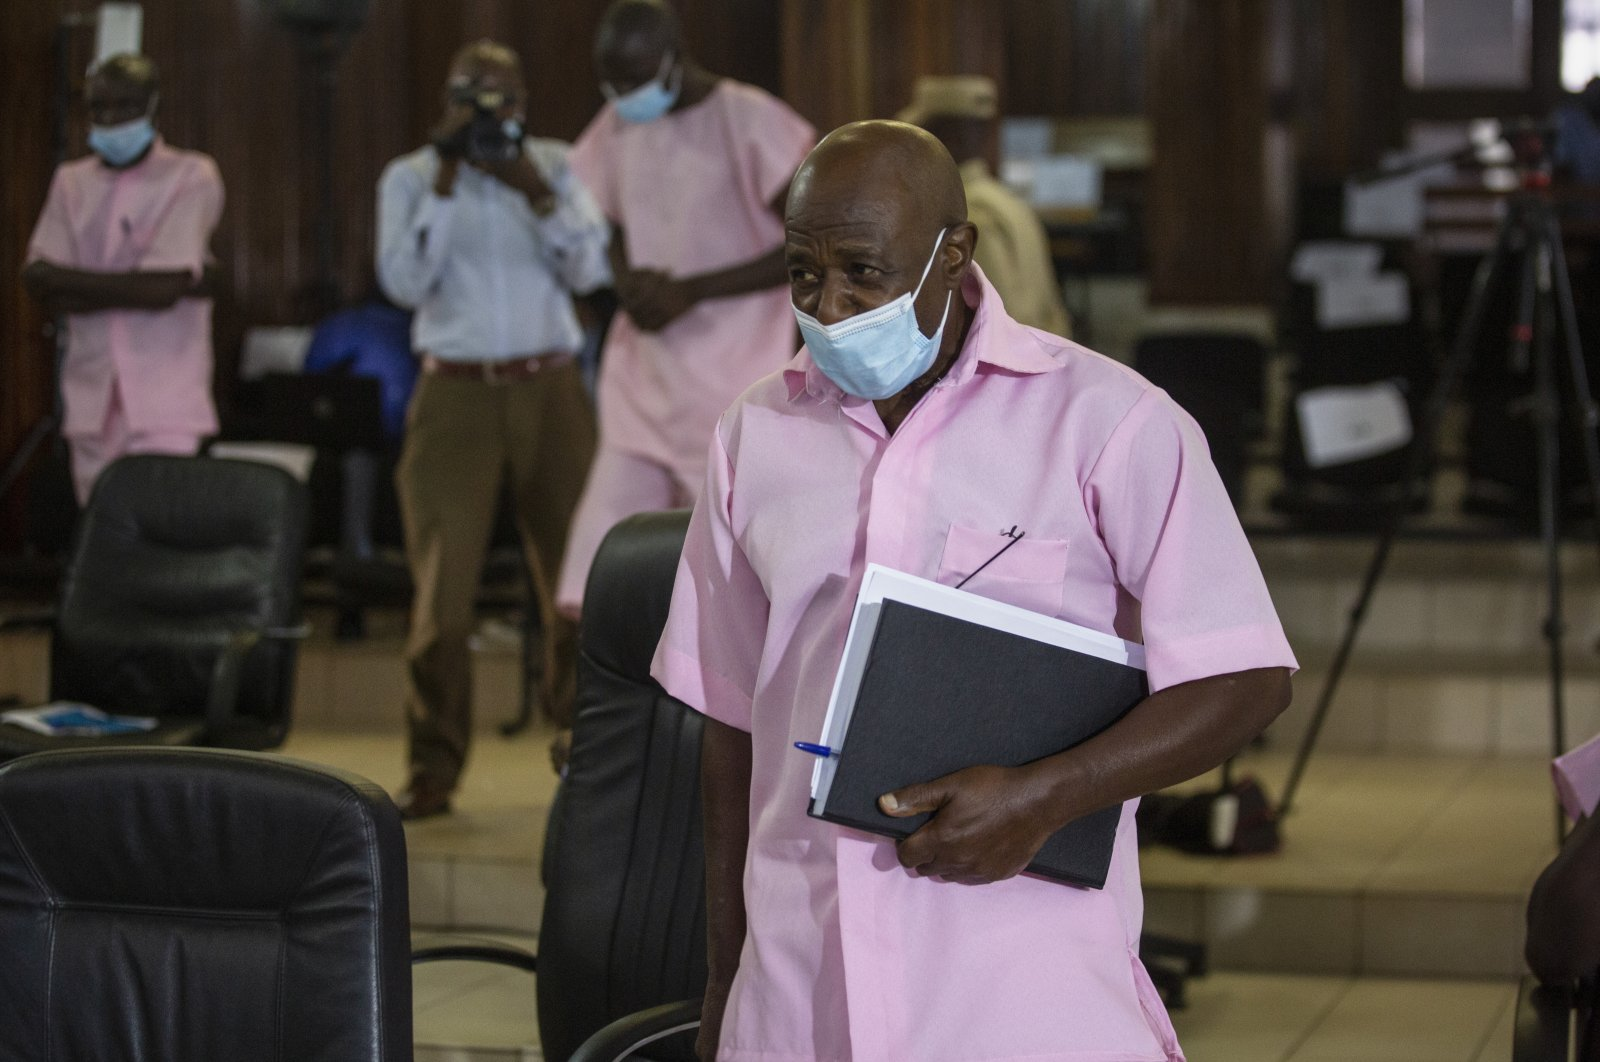 """Paul Rusesabagina, who inspired the film """"Hotel Rwanda"""" and is credited with saving more than 1,000 people by sheltering them at the hotel he managed during the genocide, attends a court hearing in Kigali, Rwanda, Feb. 26, 2021. (AP Photo)"""